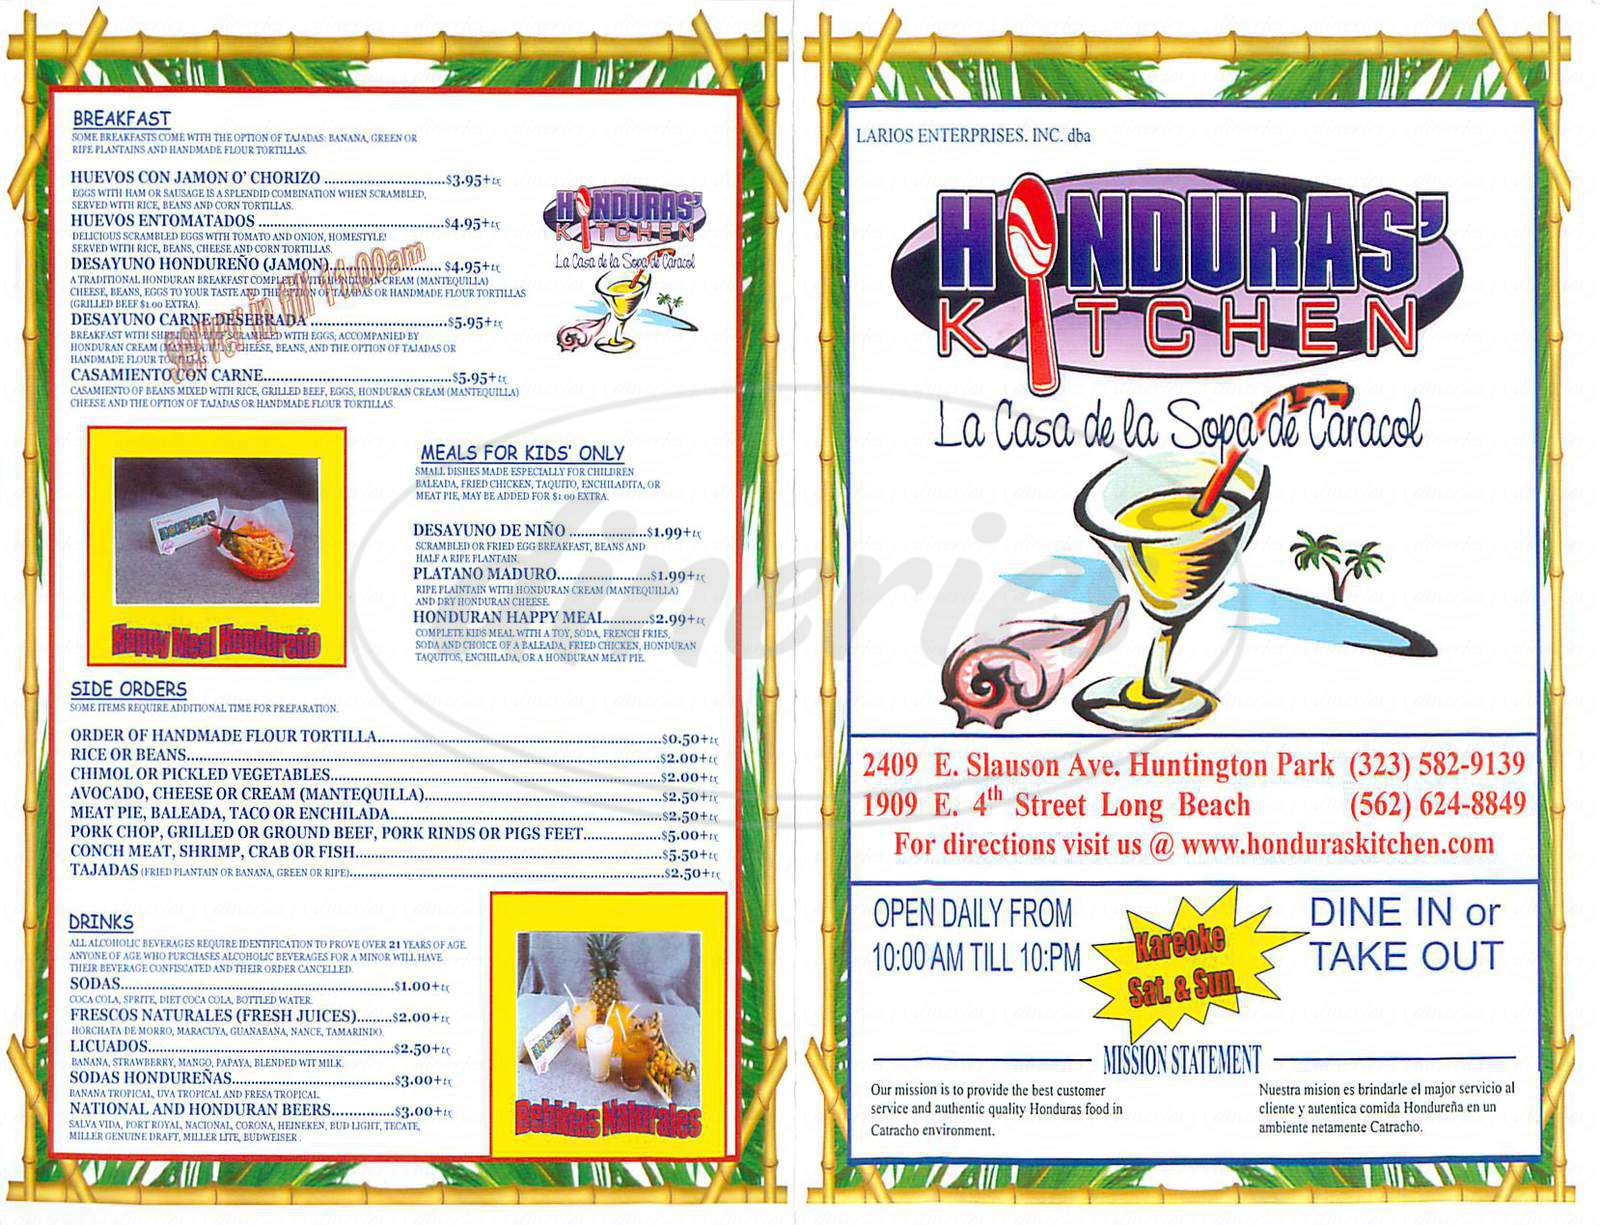 menu for Honduras' Kitchen